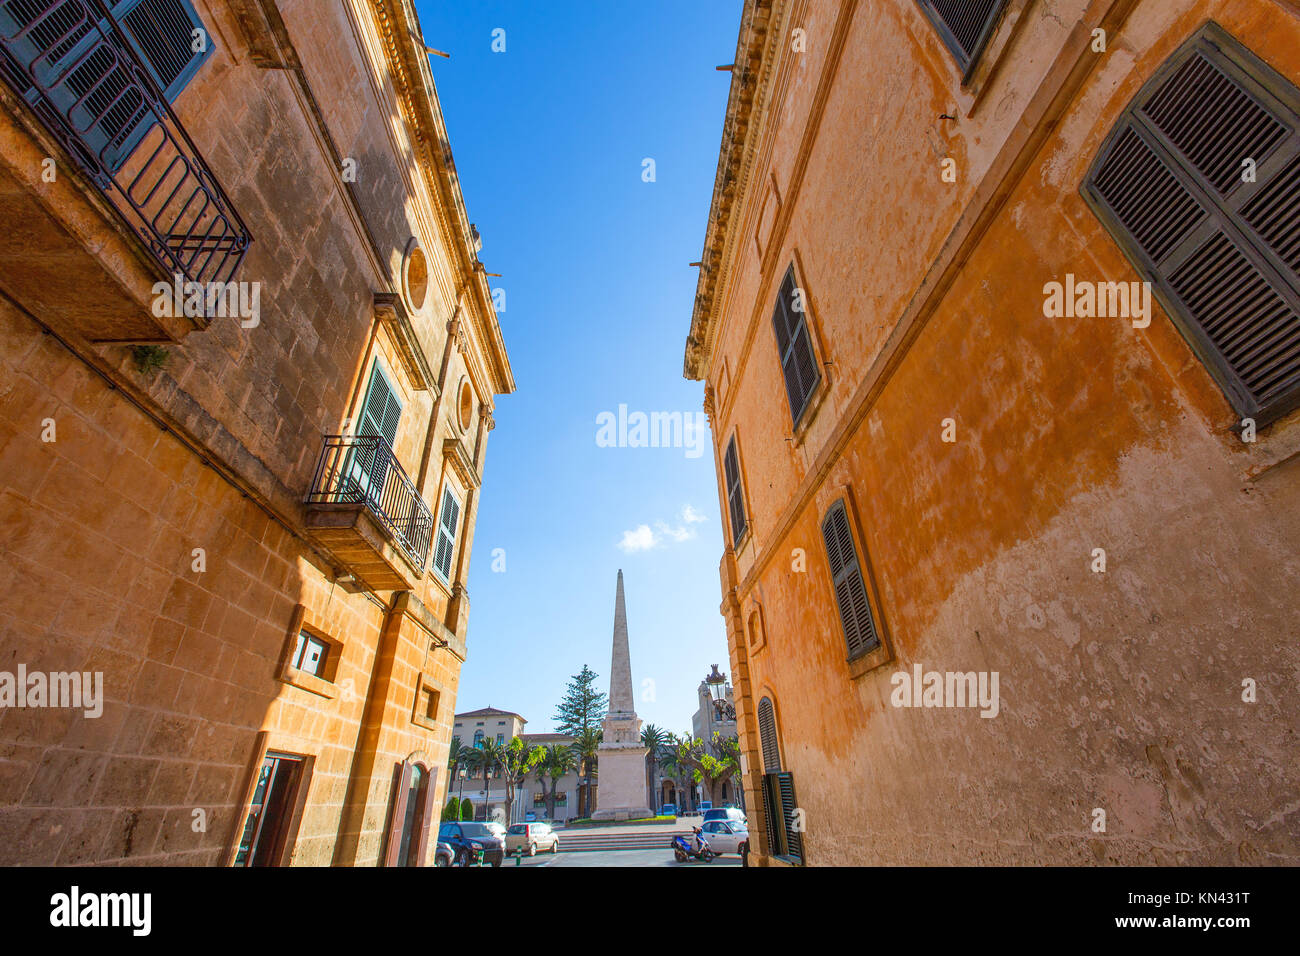 Ciutadella Menorca Placa des Born in downtown Ciudadela at Balearic islands. - Stock Image